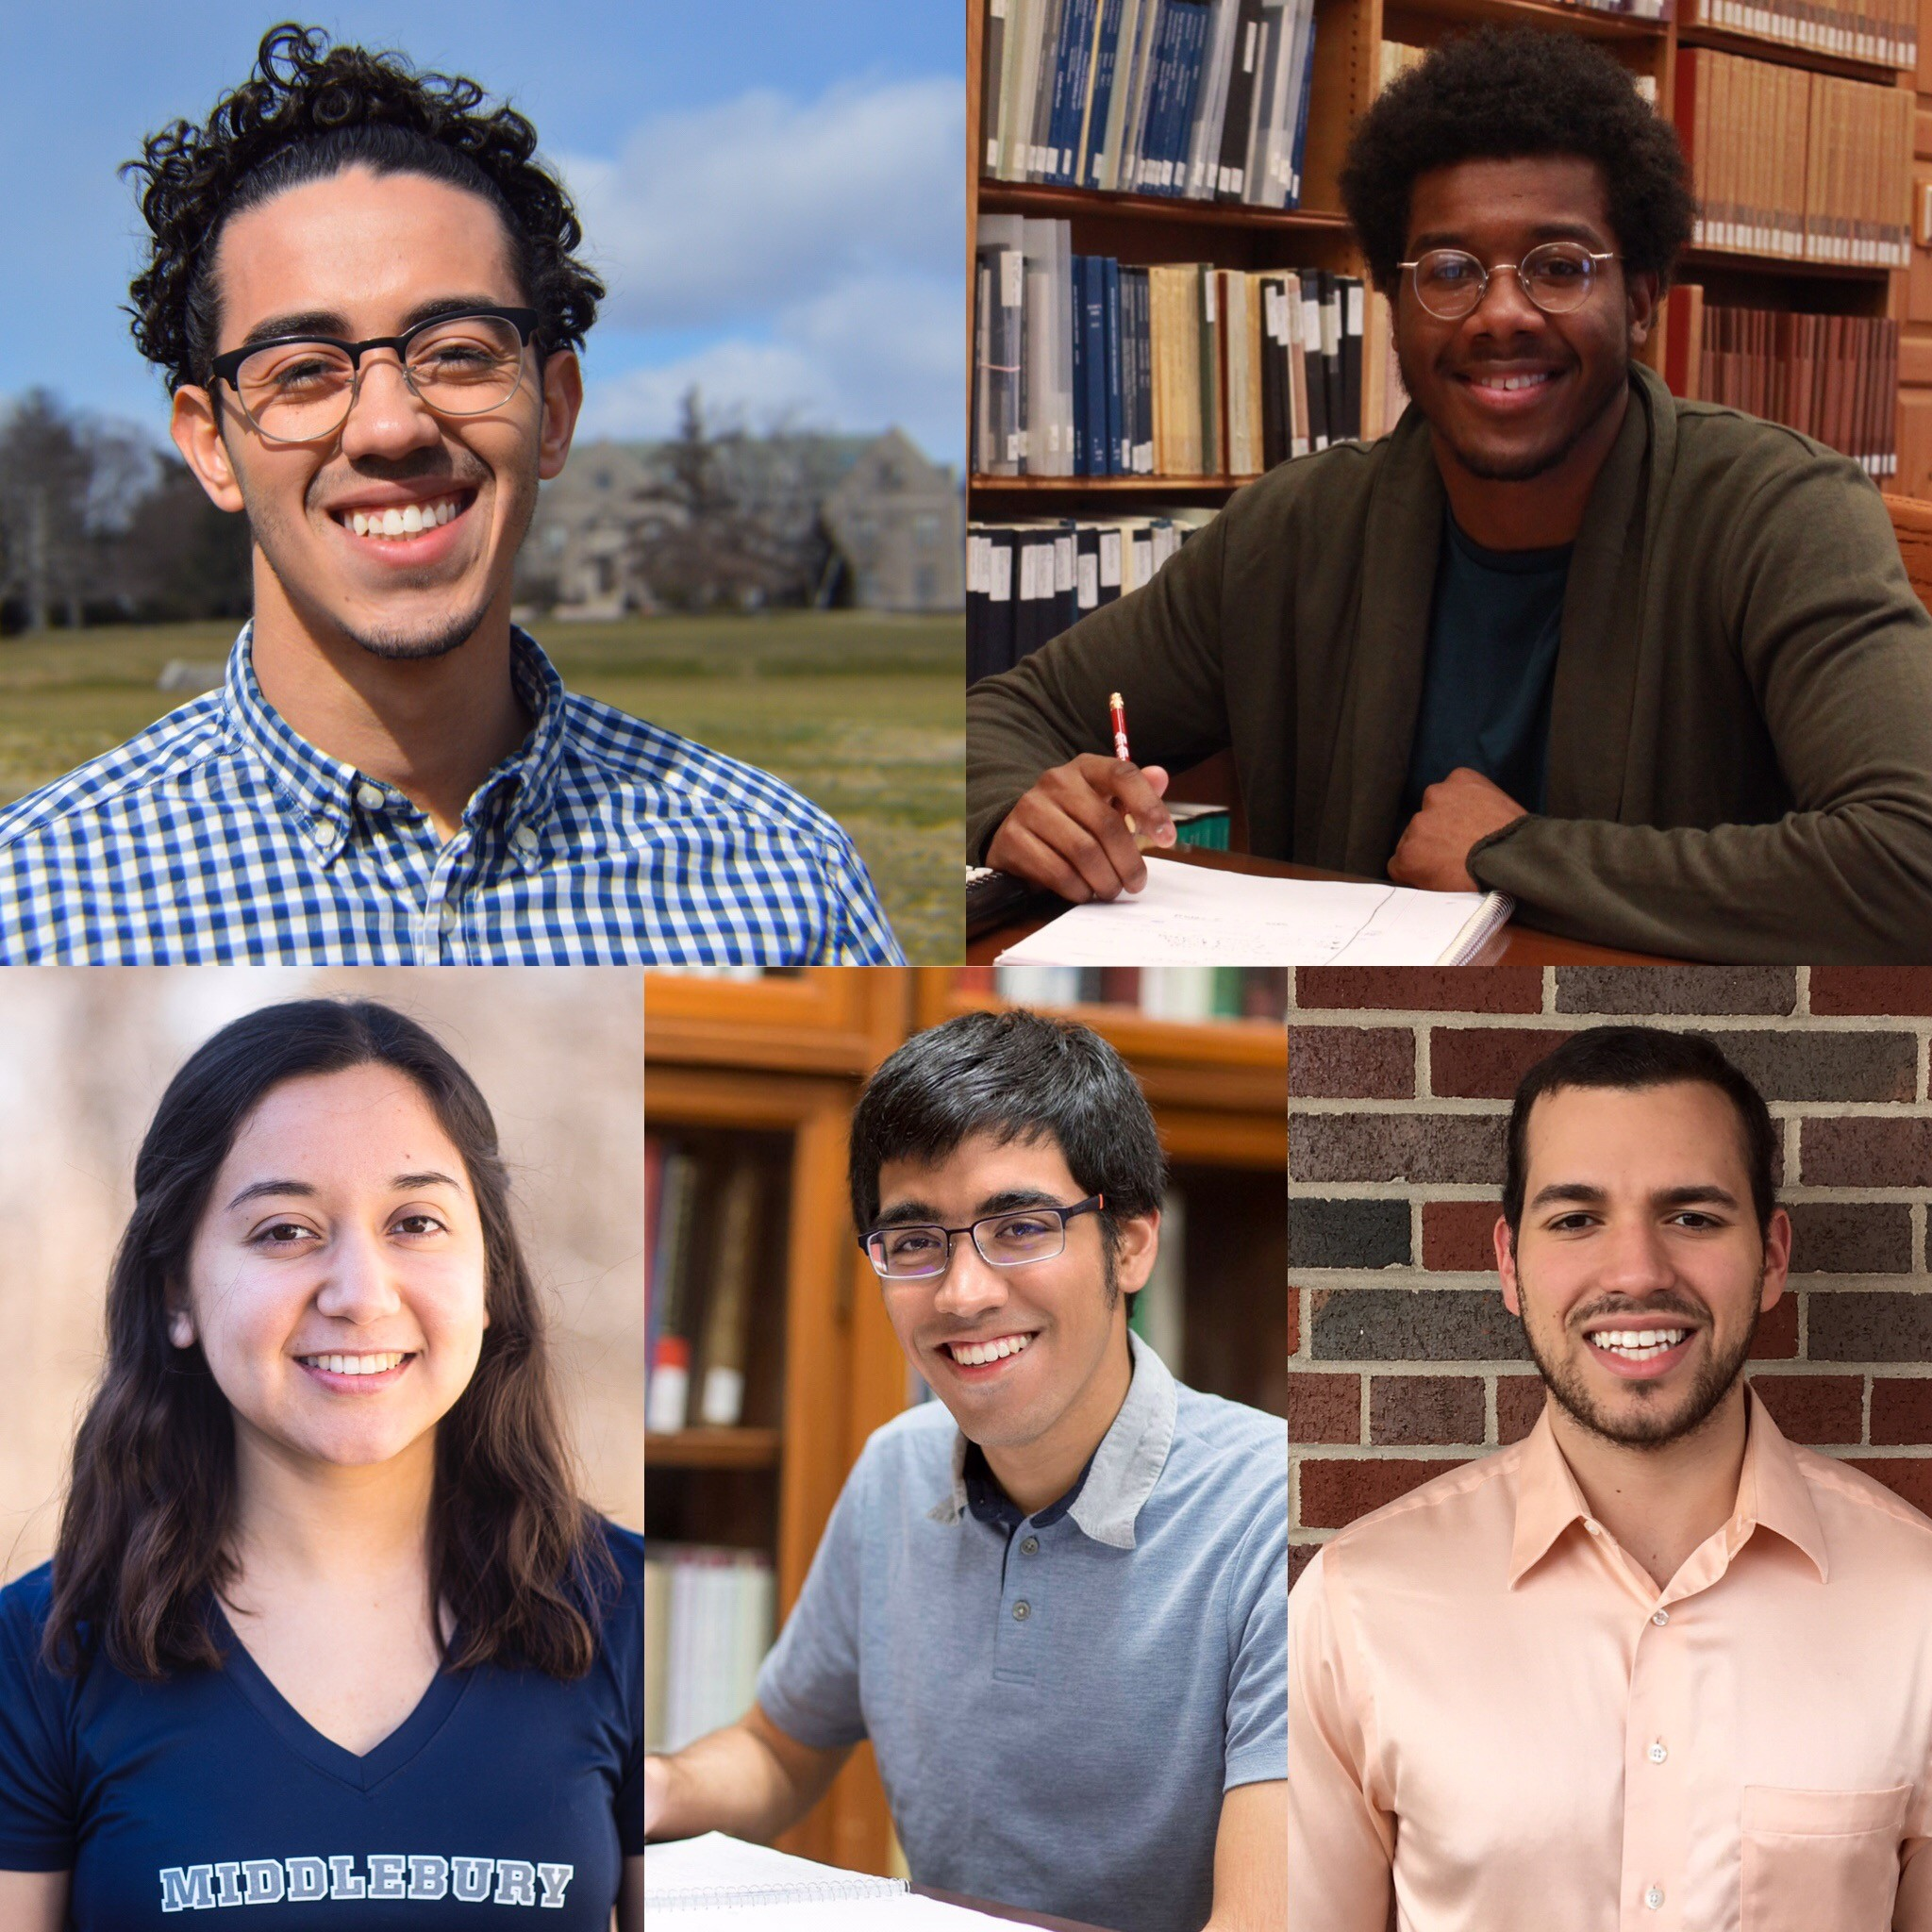 2017 Jeff Ubben Posse Fellows